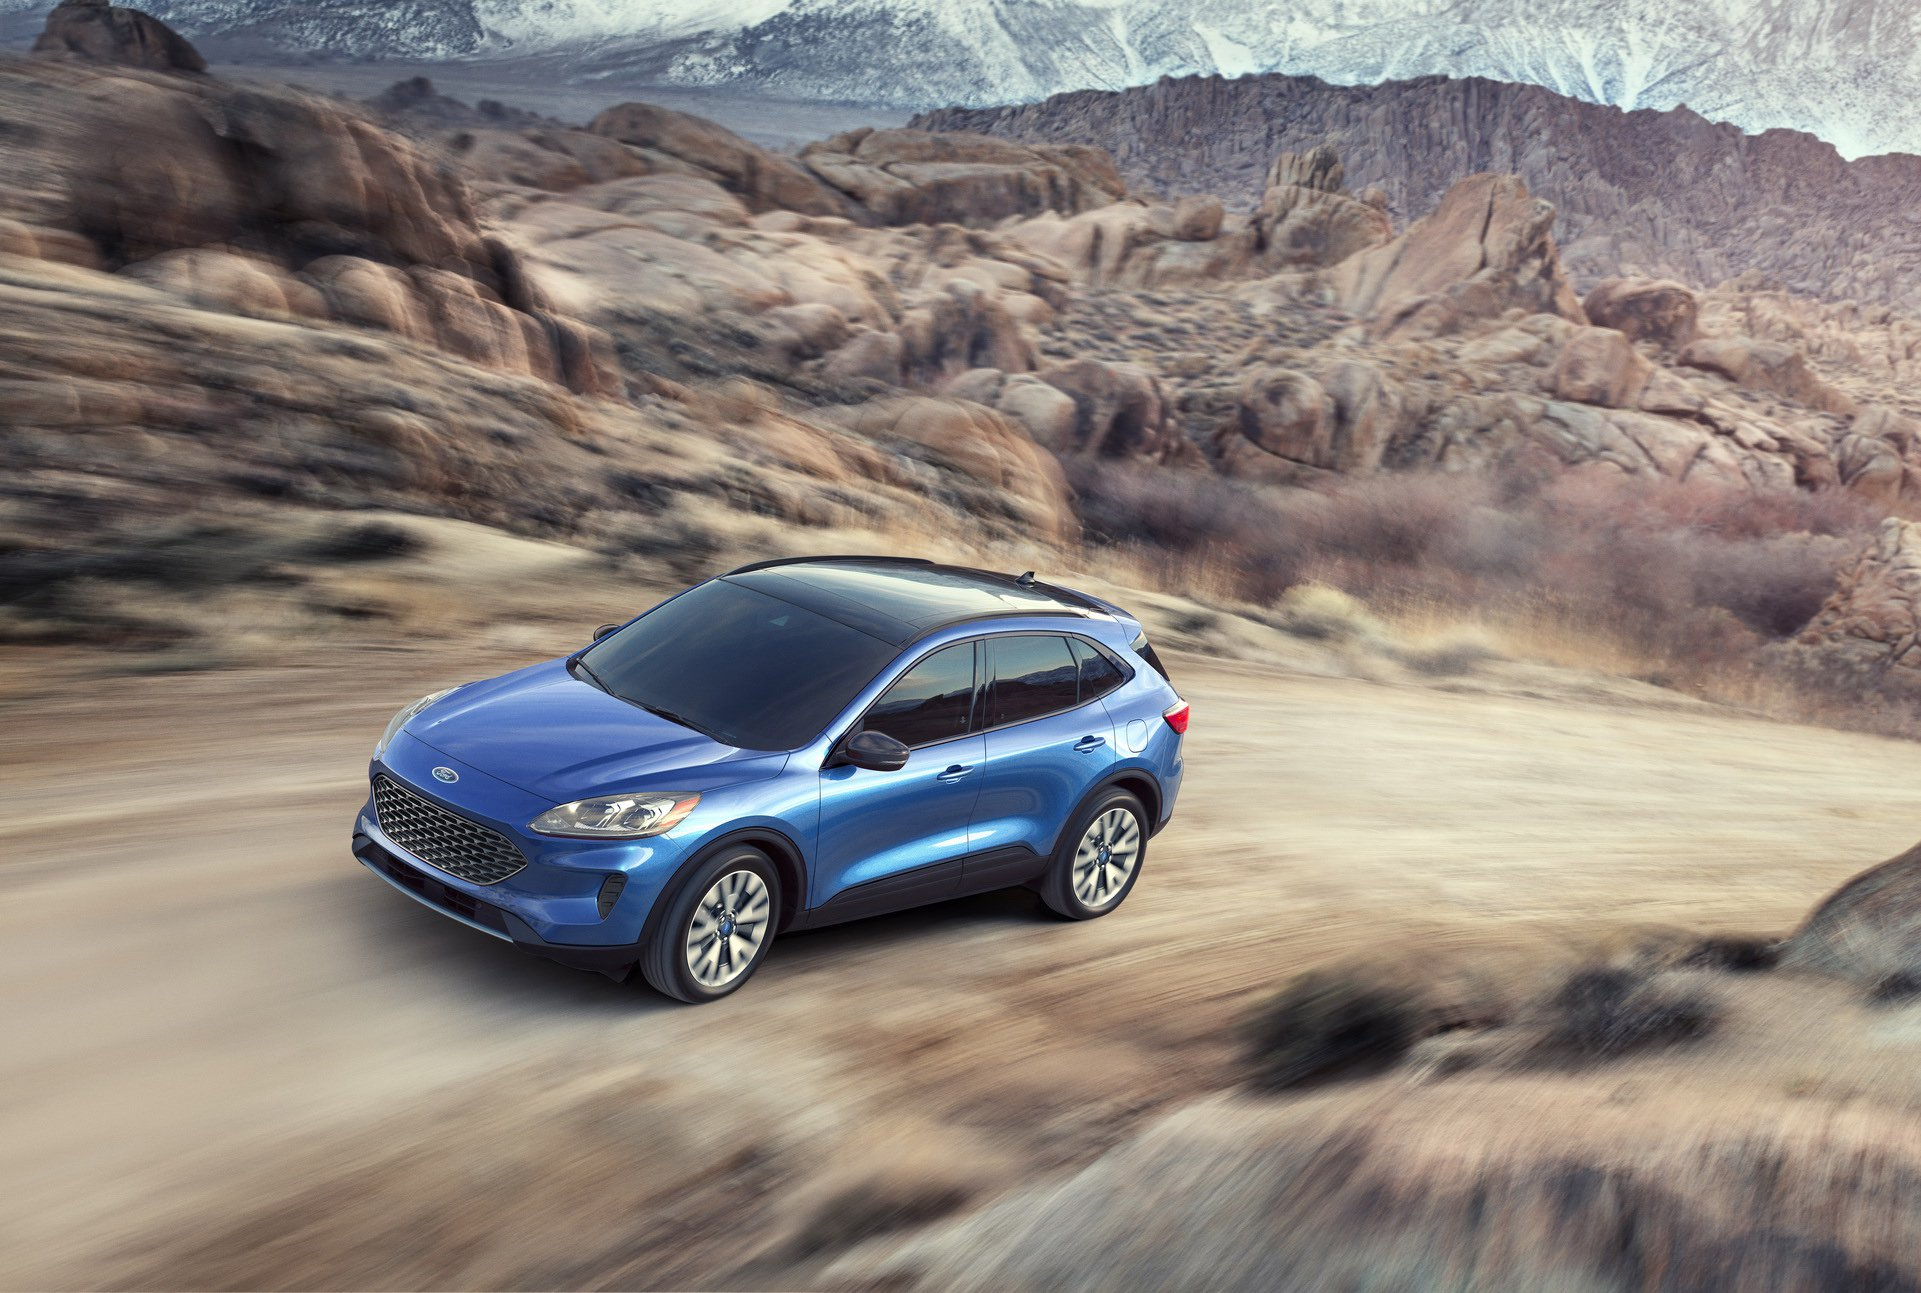 2020 Ford Escape Unveiled With Car Like Look PHEV and